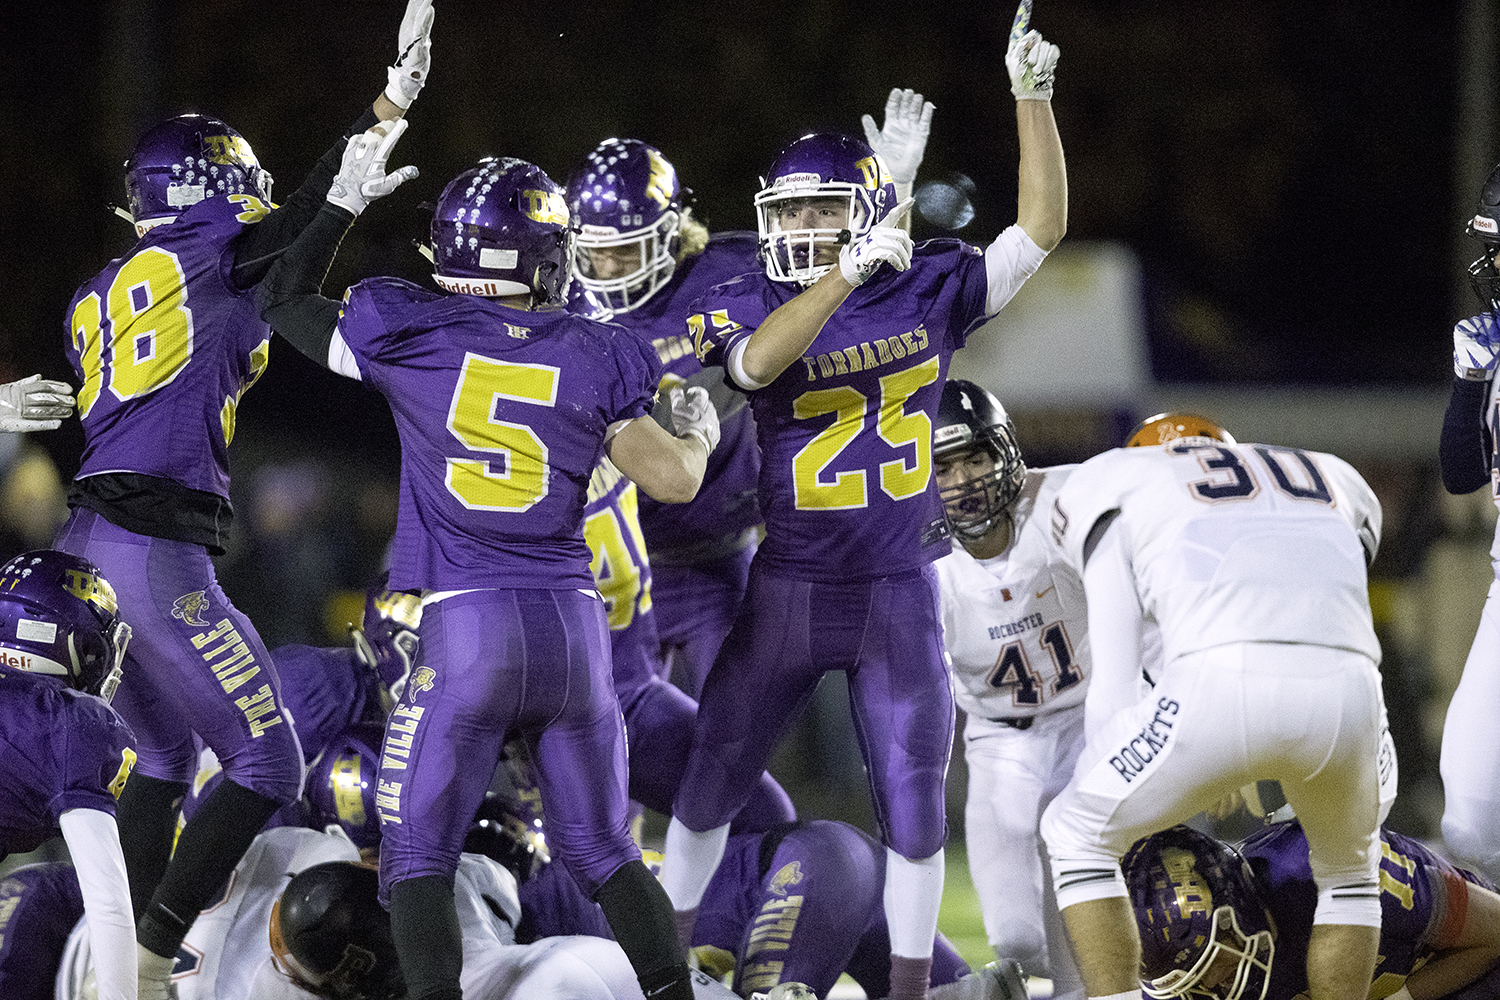 Taylorville's Austin Herkert celebrates as Taylorville takes possession after an onside kick during the Class 4A quarterfinals in Taylorville Saturday, Nov. 10, 2018. [Ted Schurter/The State Journal-Register]